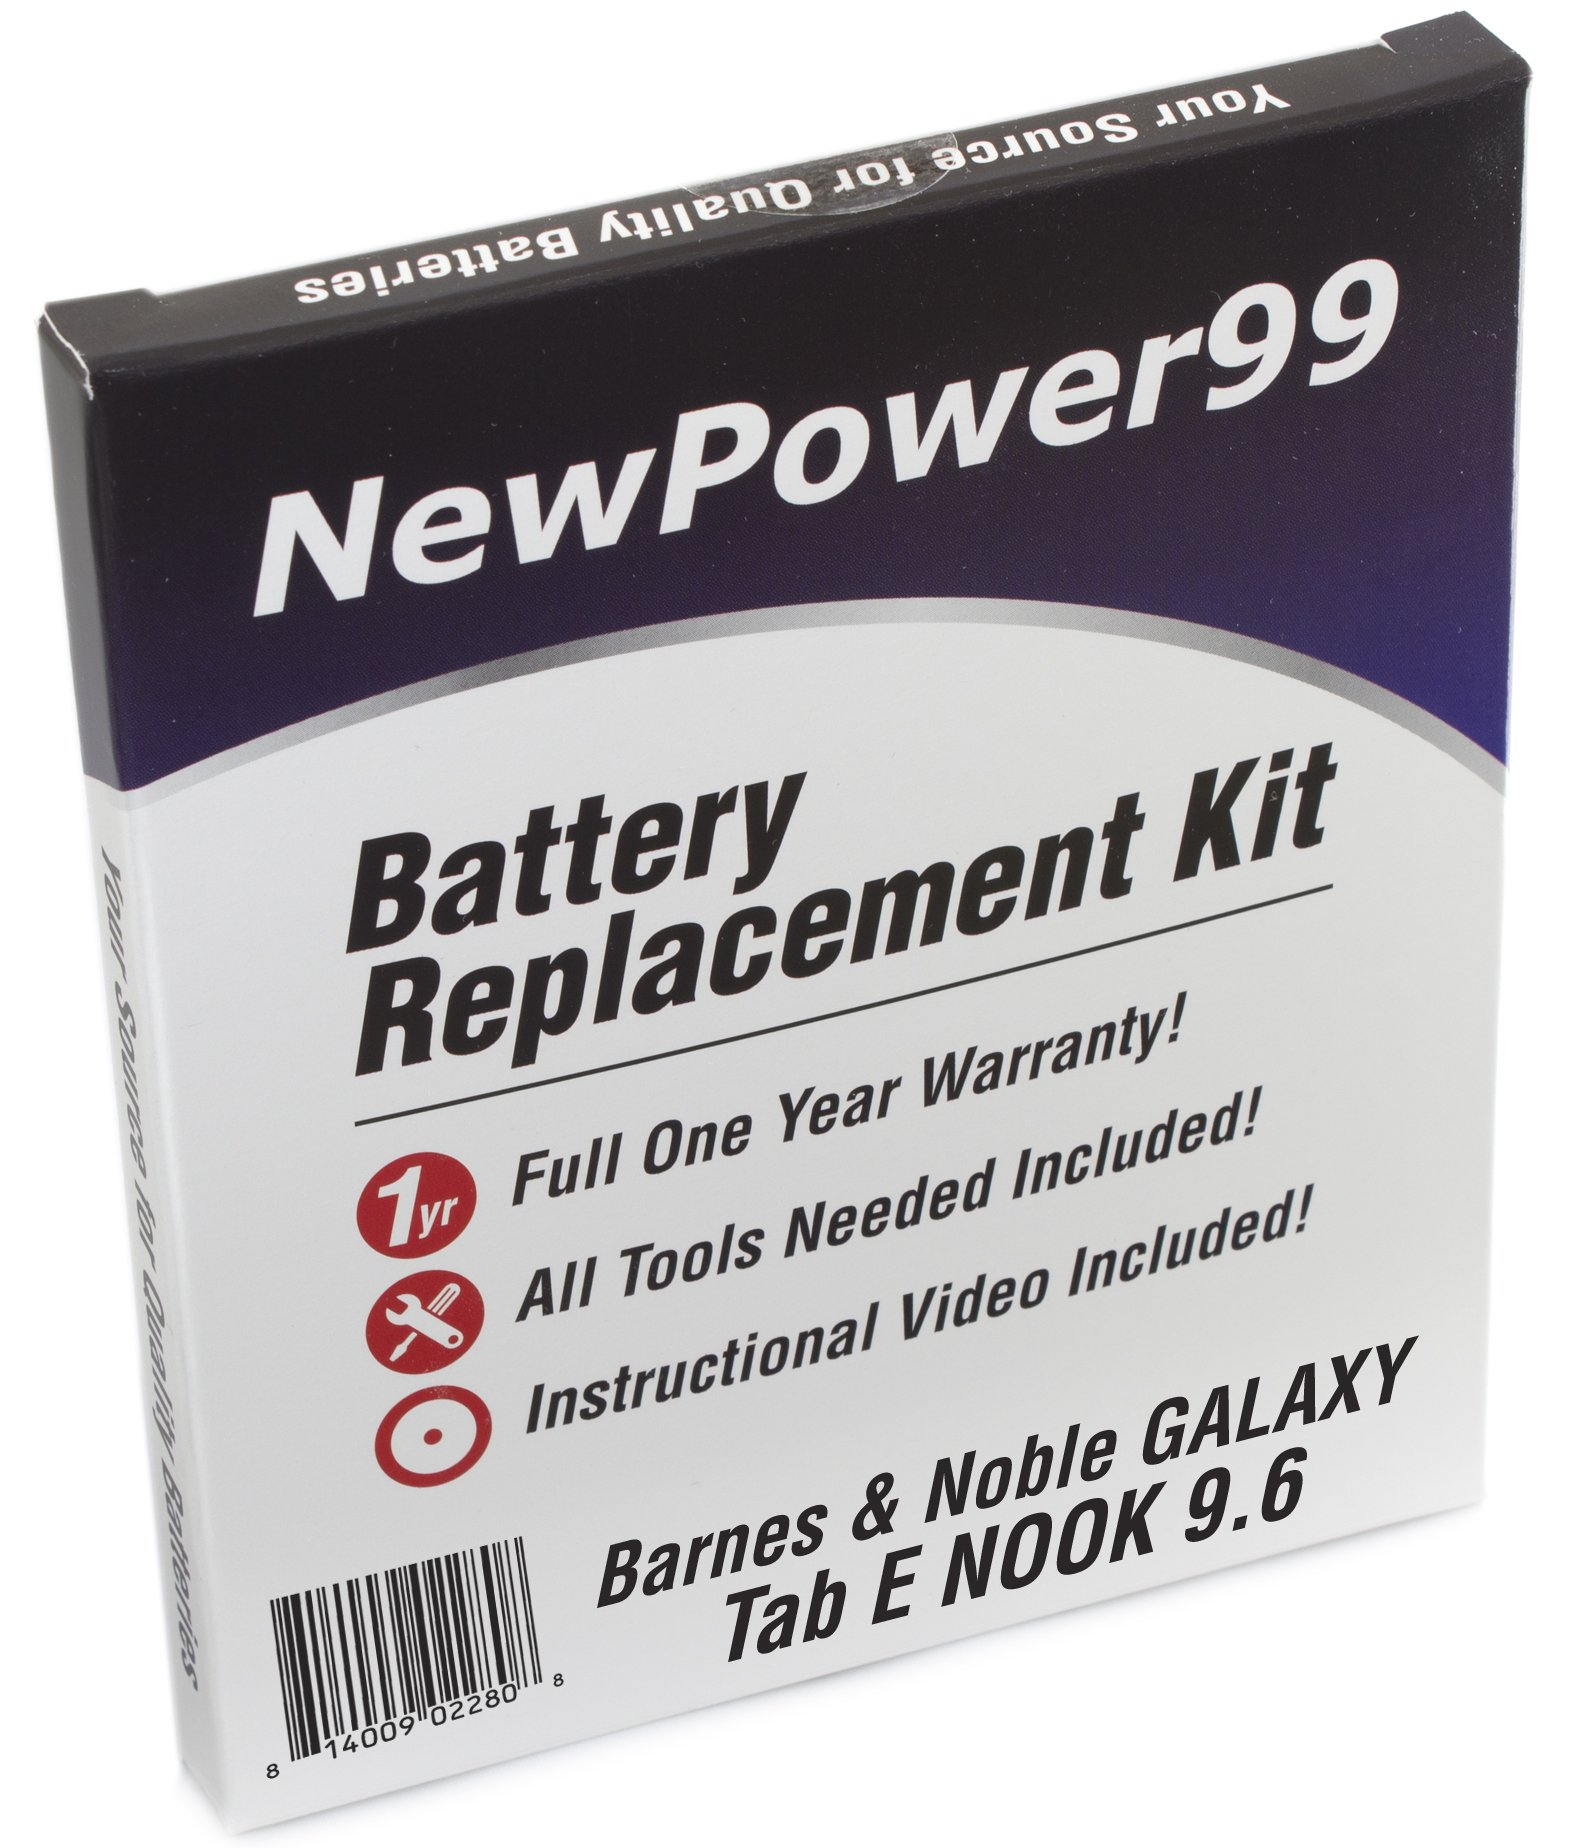 NewPower99 Battery Replacement Kit with Battery, Instructions and Tools for Samsung Galaxy Tab E Nook 9.6